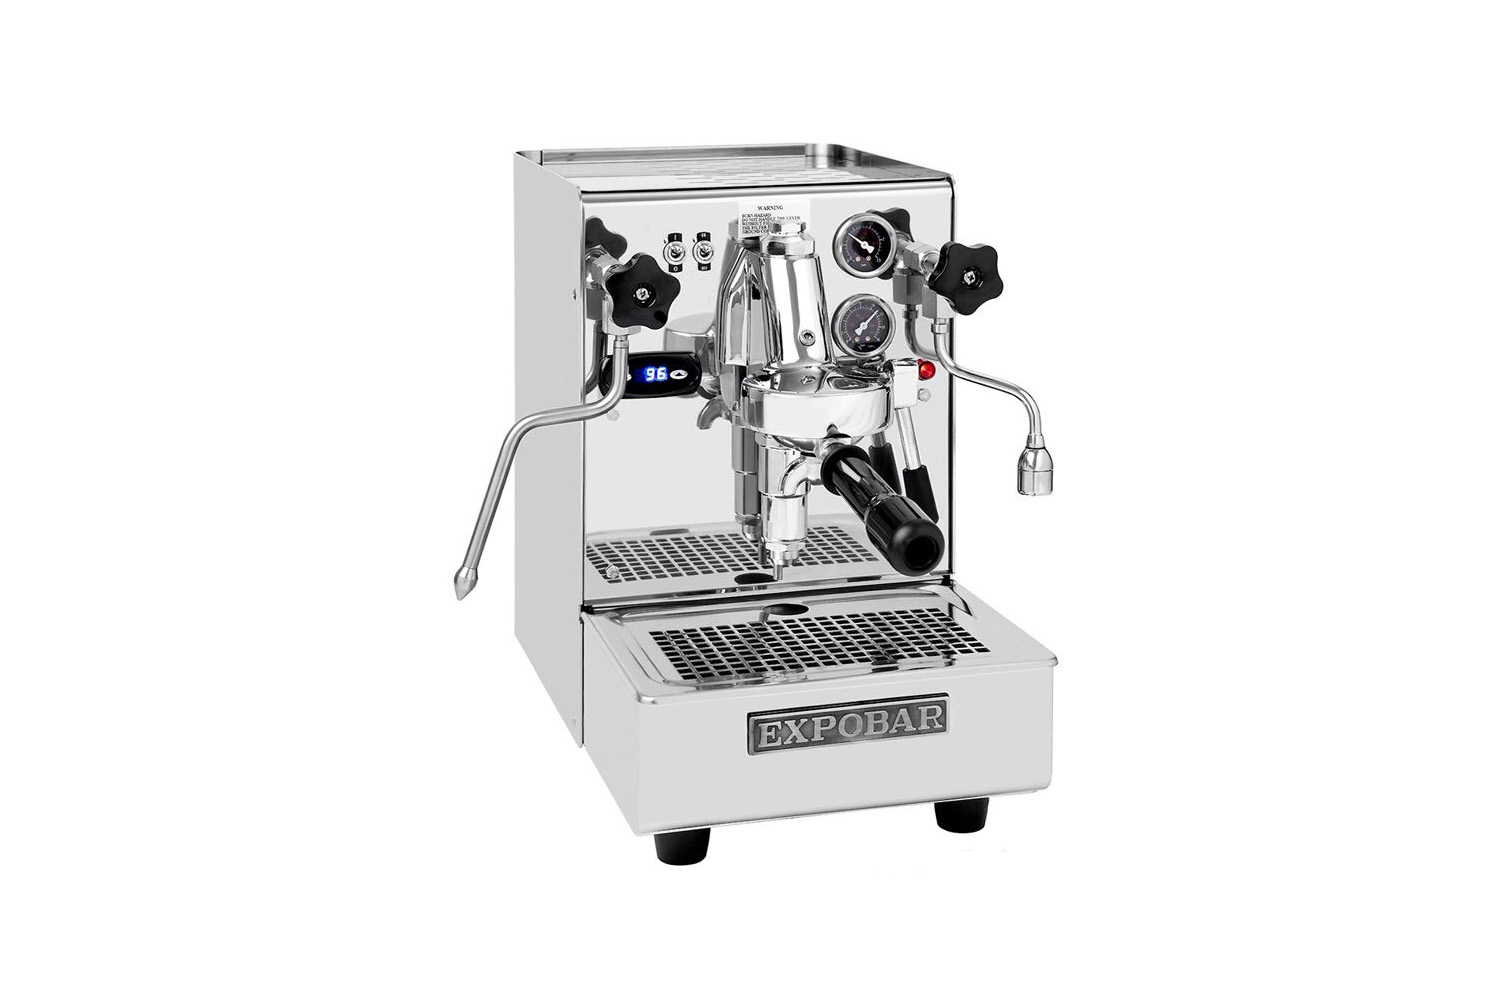 the expobar brewtus iv espresso machine can be sourced refurbished through whol 15